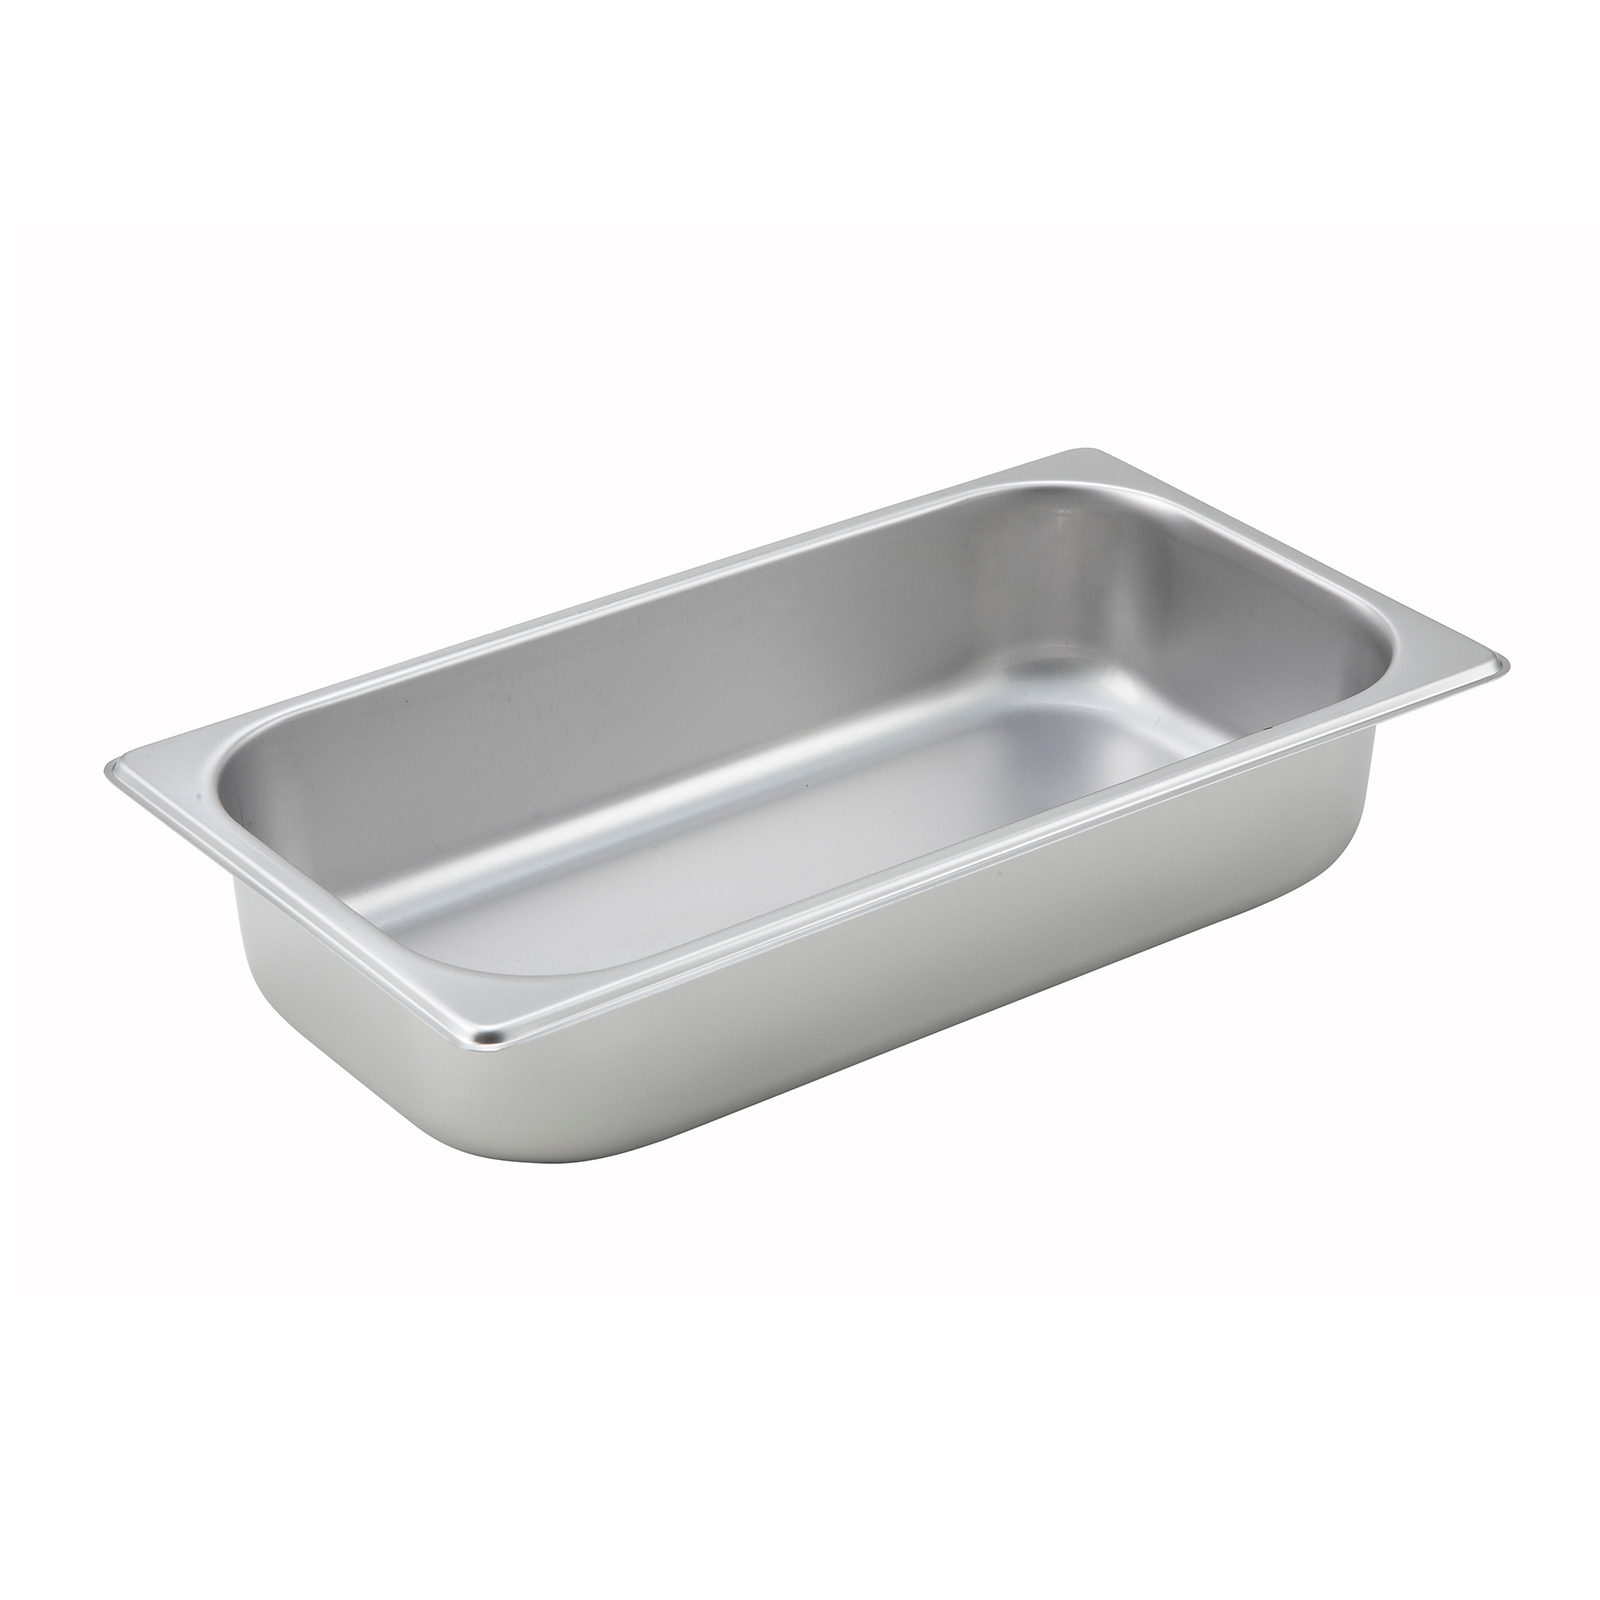 Winco SPT2 steam table pan, stainless steel